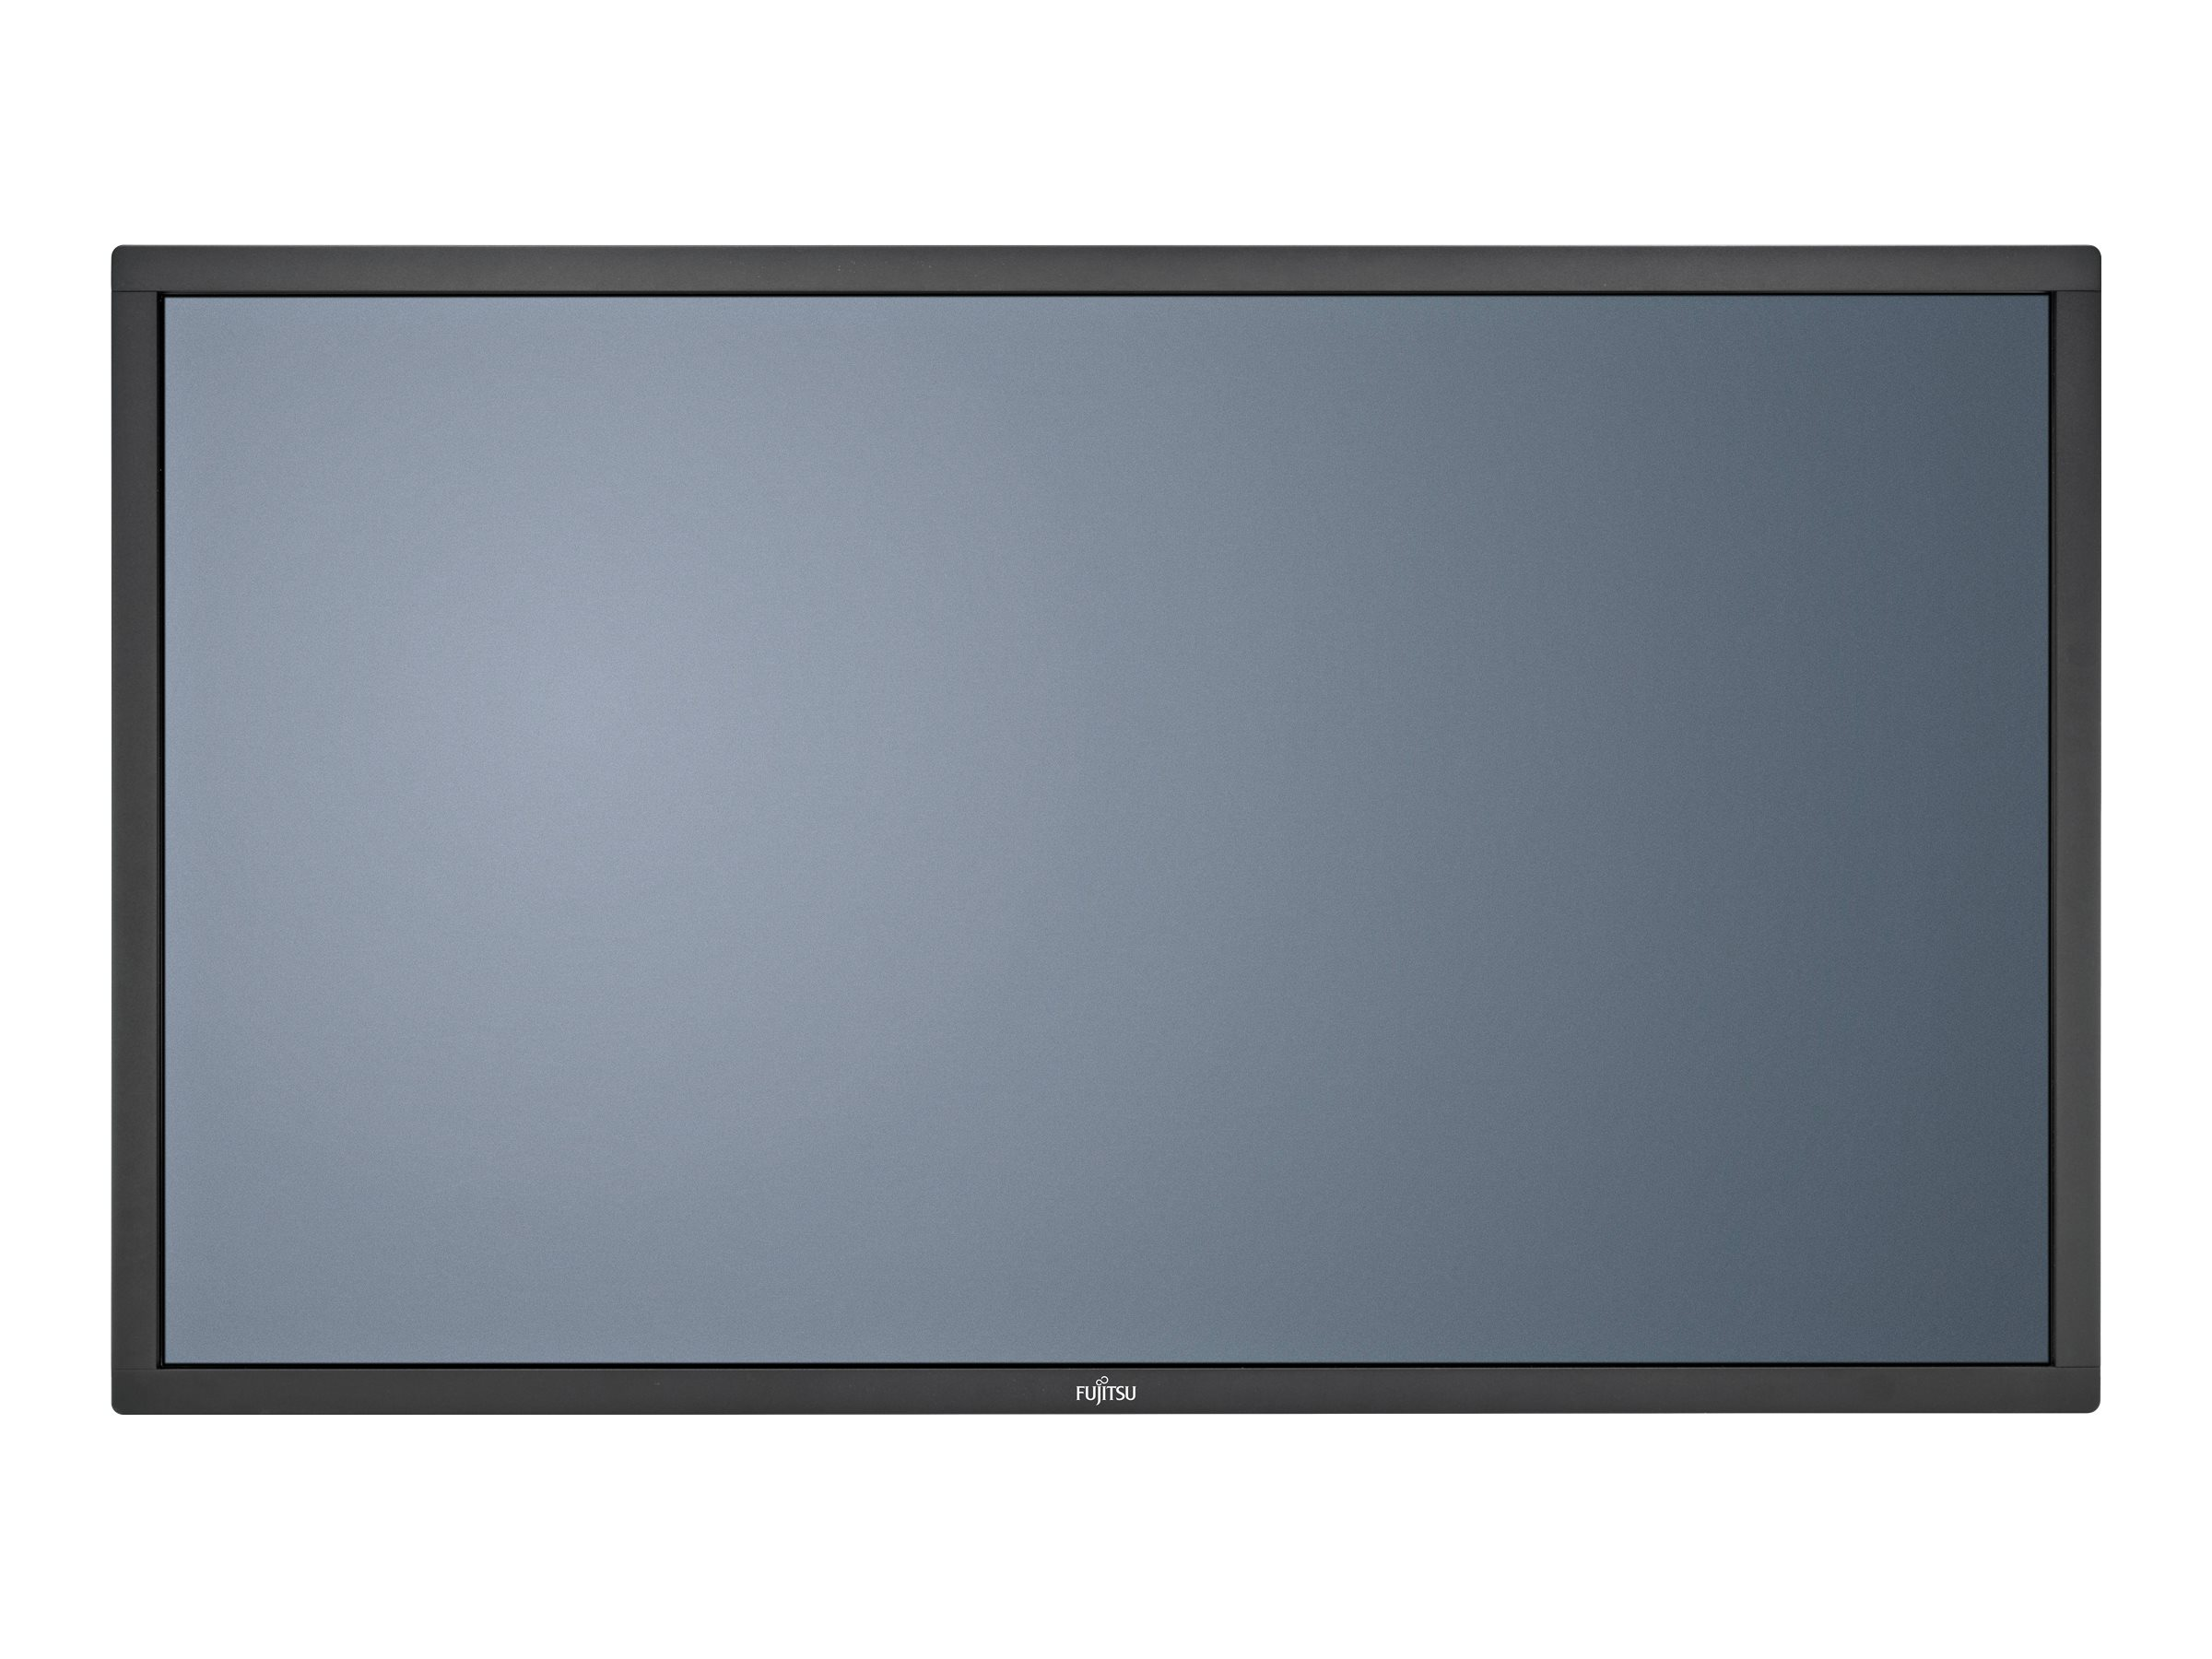 "Fujitsu XL55-1 TOUCH - 139 cm (55"") Klasse LED-Display - interaktiv - mit Touchscreen - 1080p (Full HD)"